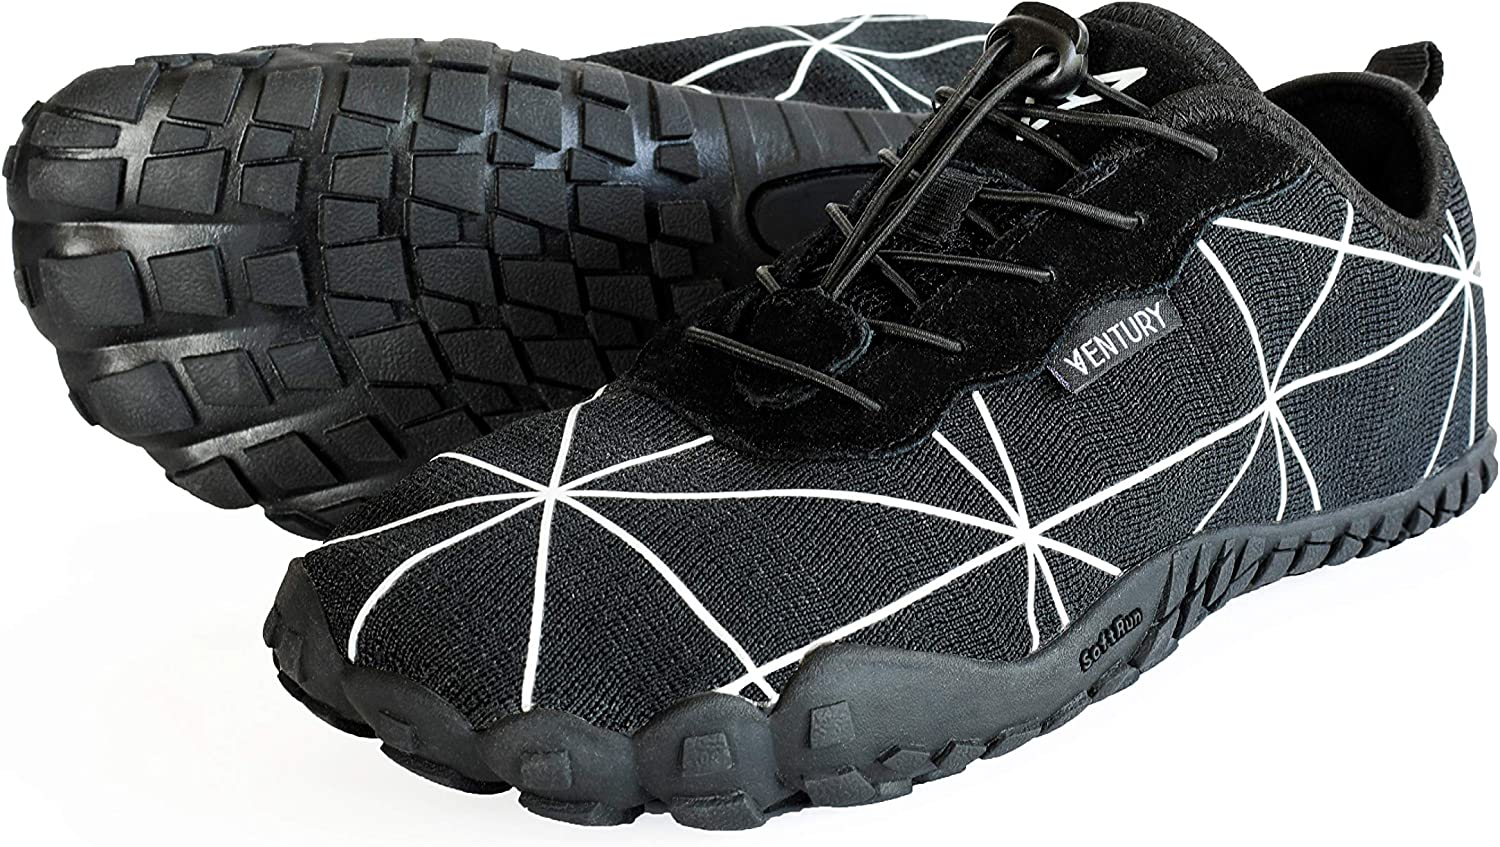 Ventury Zero Barefoot Trail Running Shoes – Minimalist Runners with Wide Toe Box, Zero Drop Sole and Odor-Free Insole with Real Silver for Men and Women